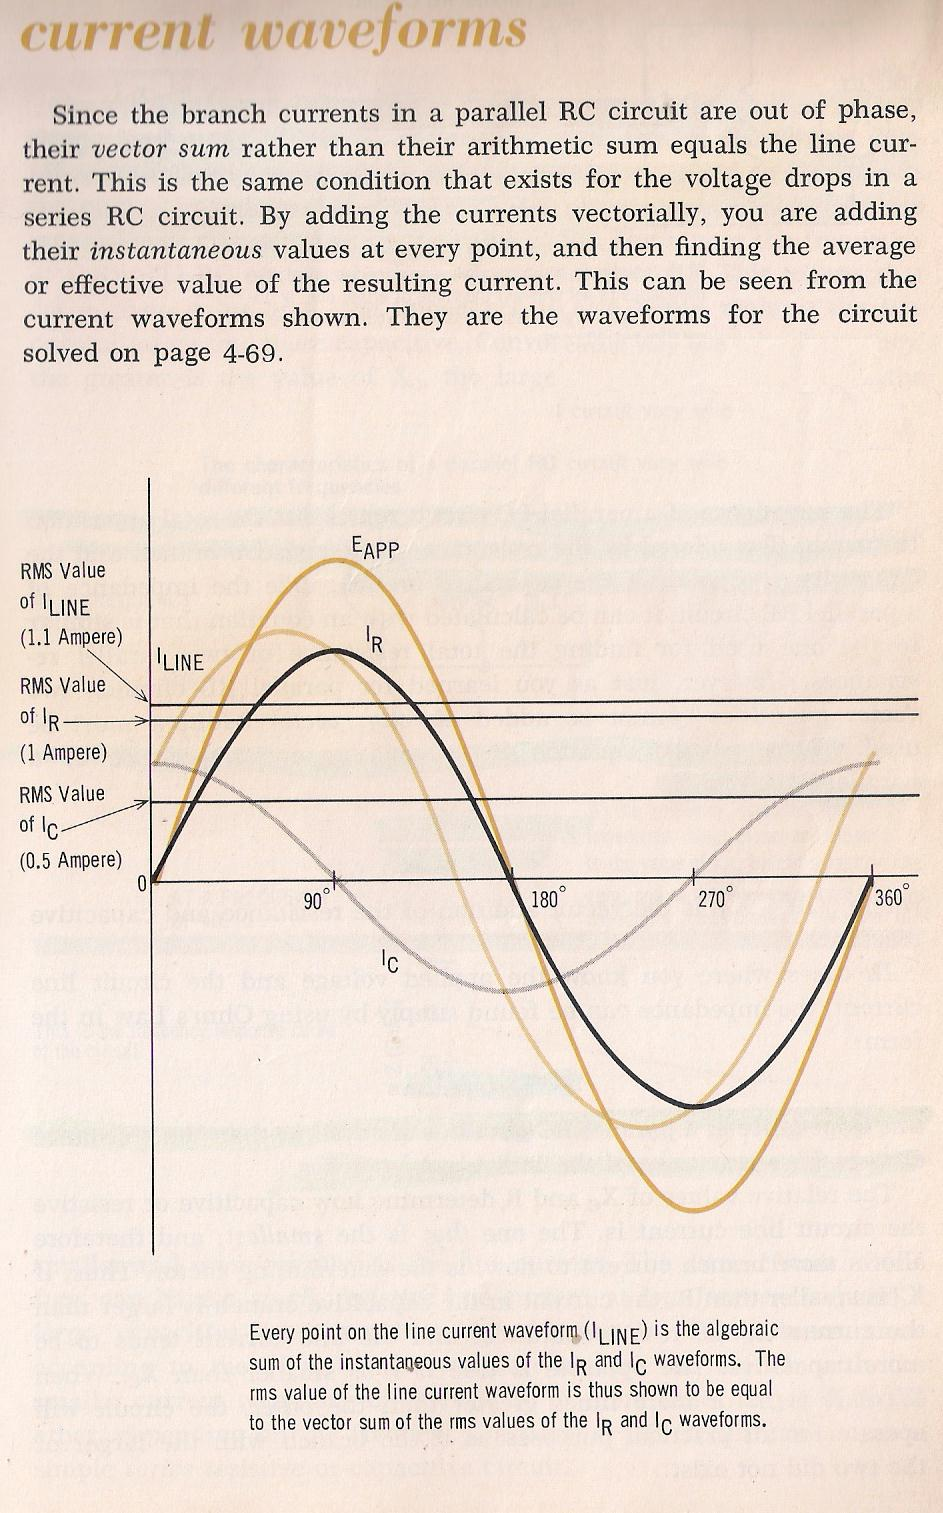 Rlc Circuits Series Rc Circuit Graph On Impedance Of Diagram 035 Current Waveforms By Larry E Gugle K4rfe